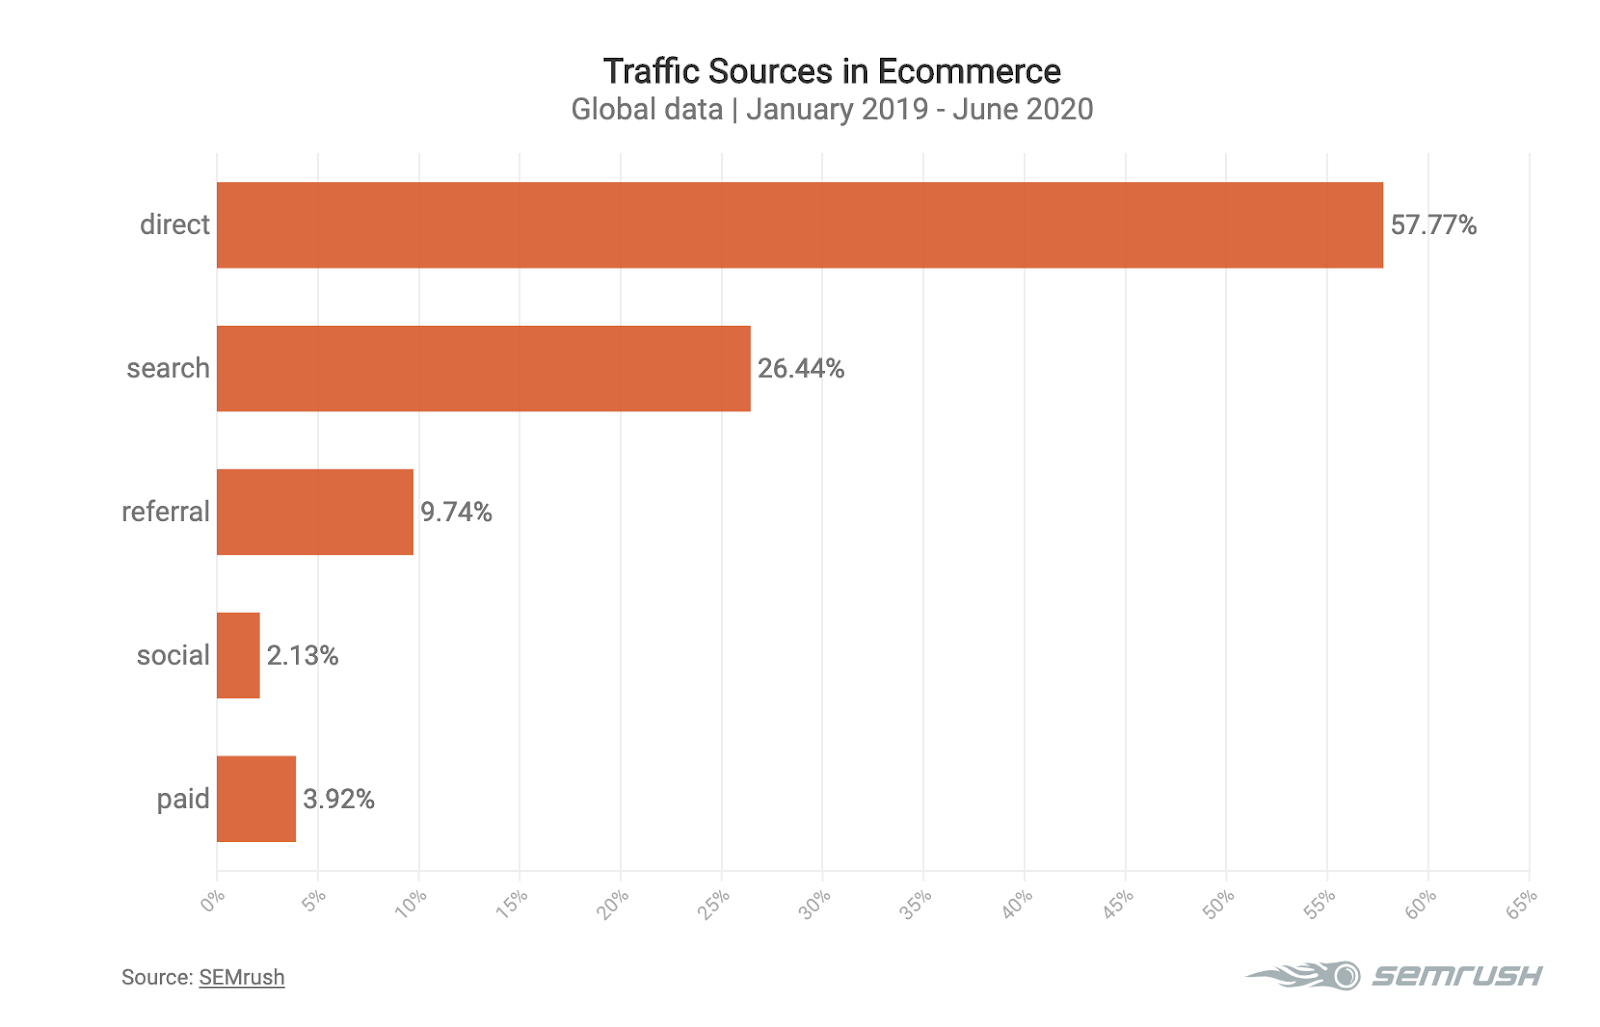 Graphic showing traffic sources in ecommerce